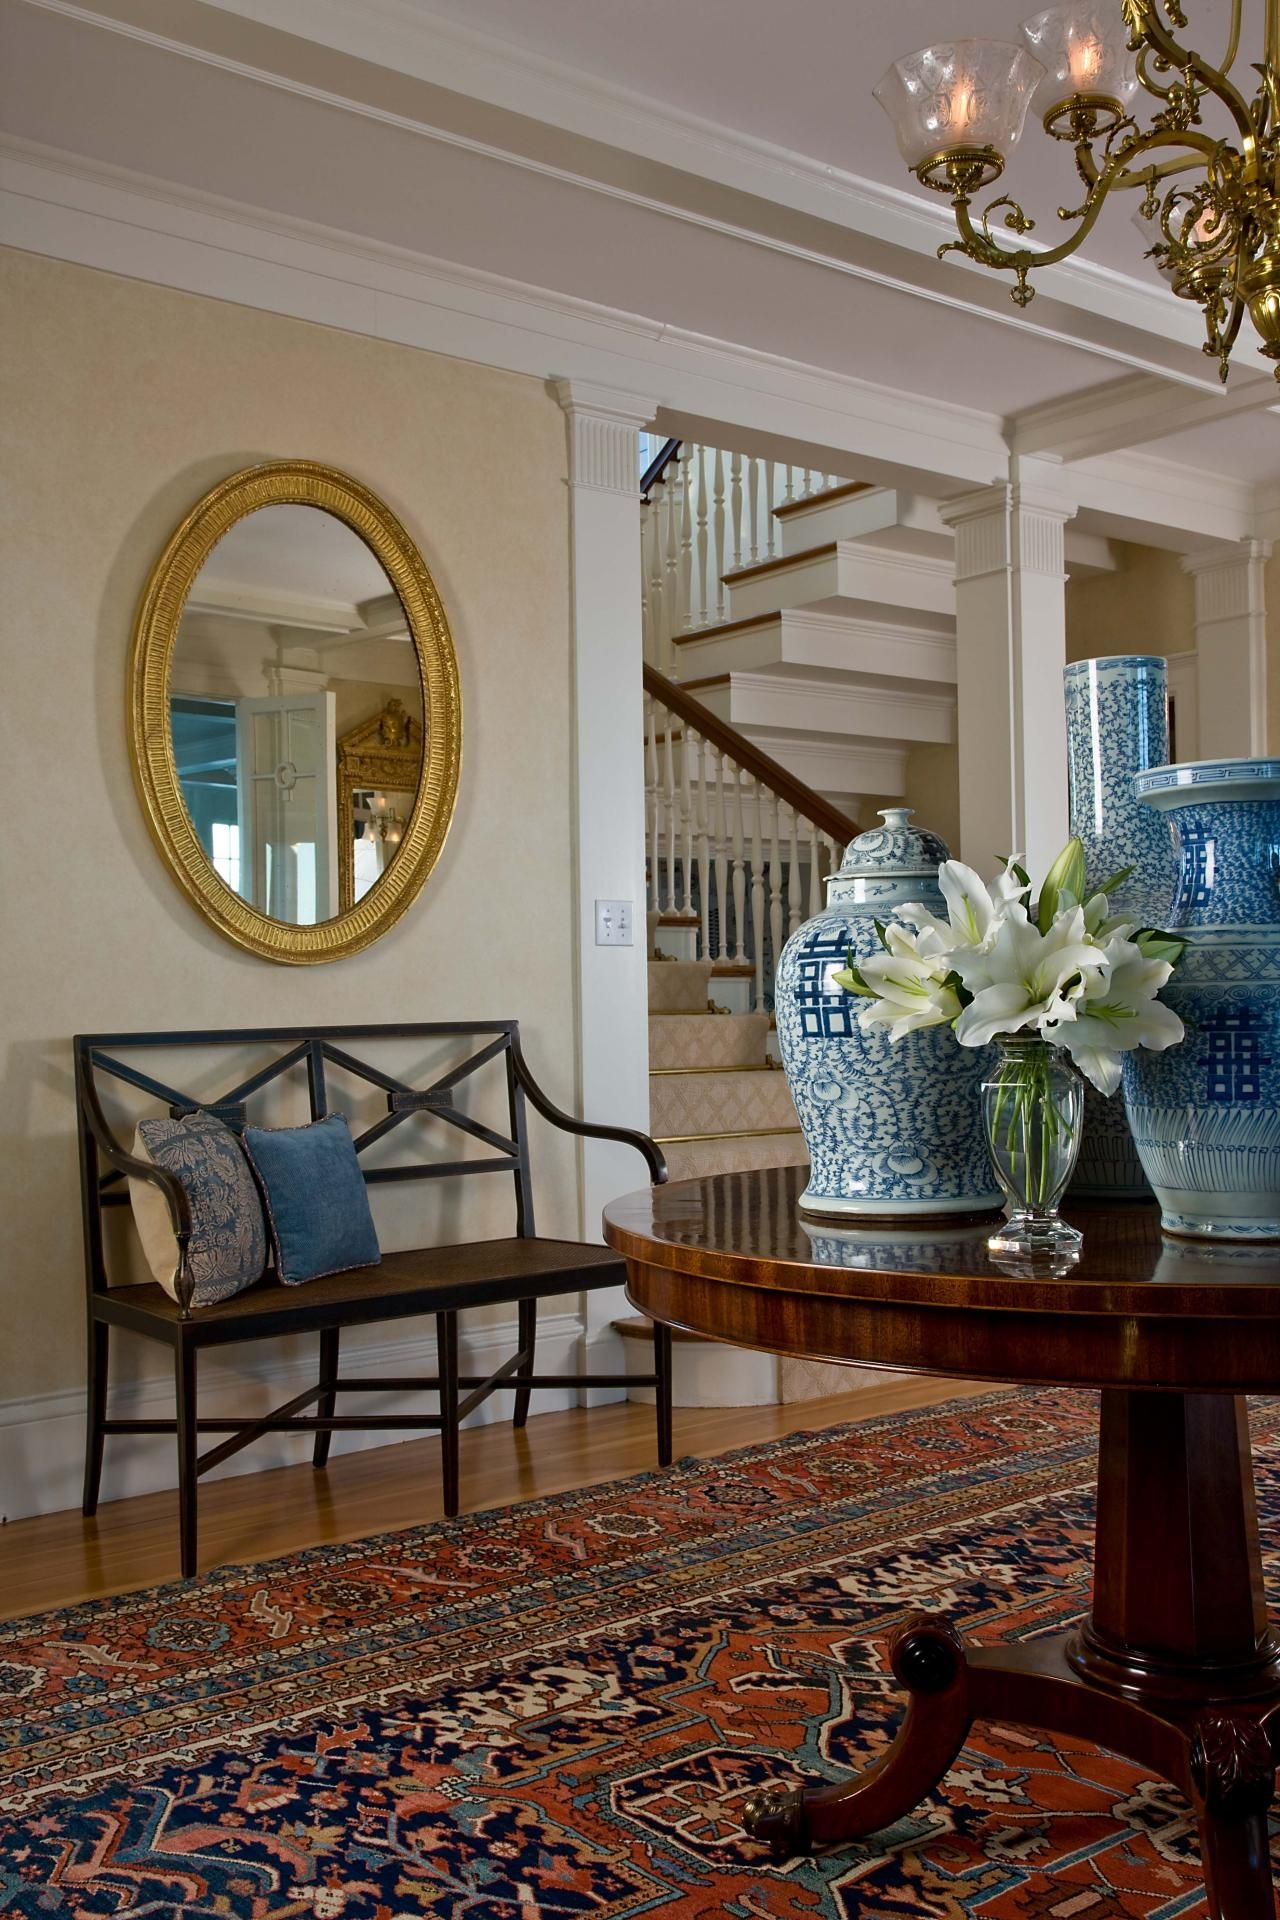 This traditional entryway features a golf leaf mirror antique